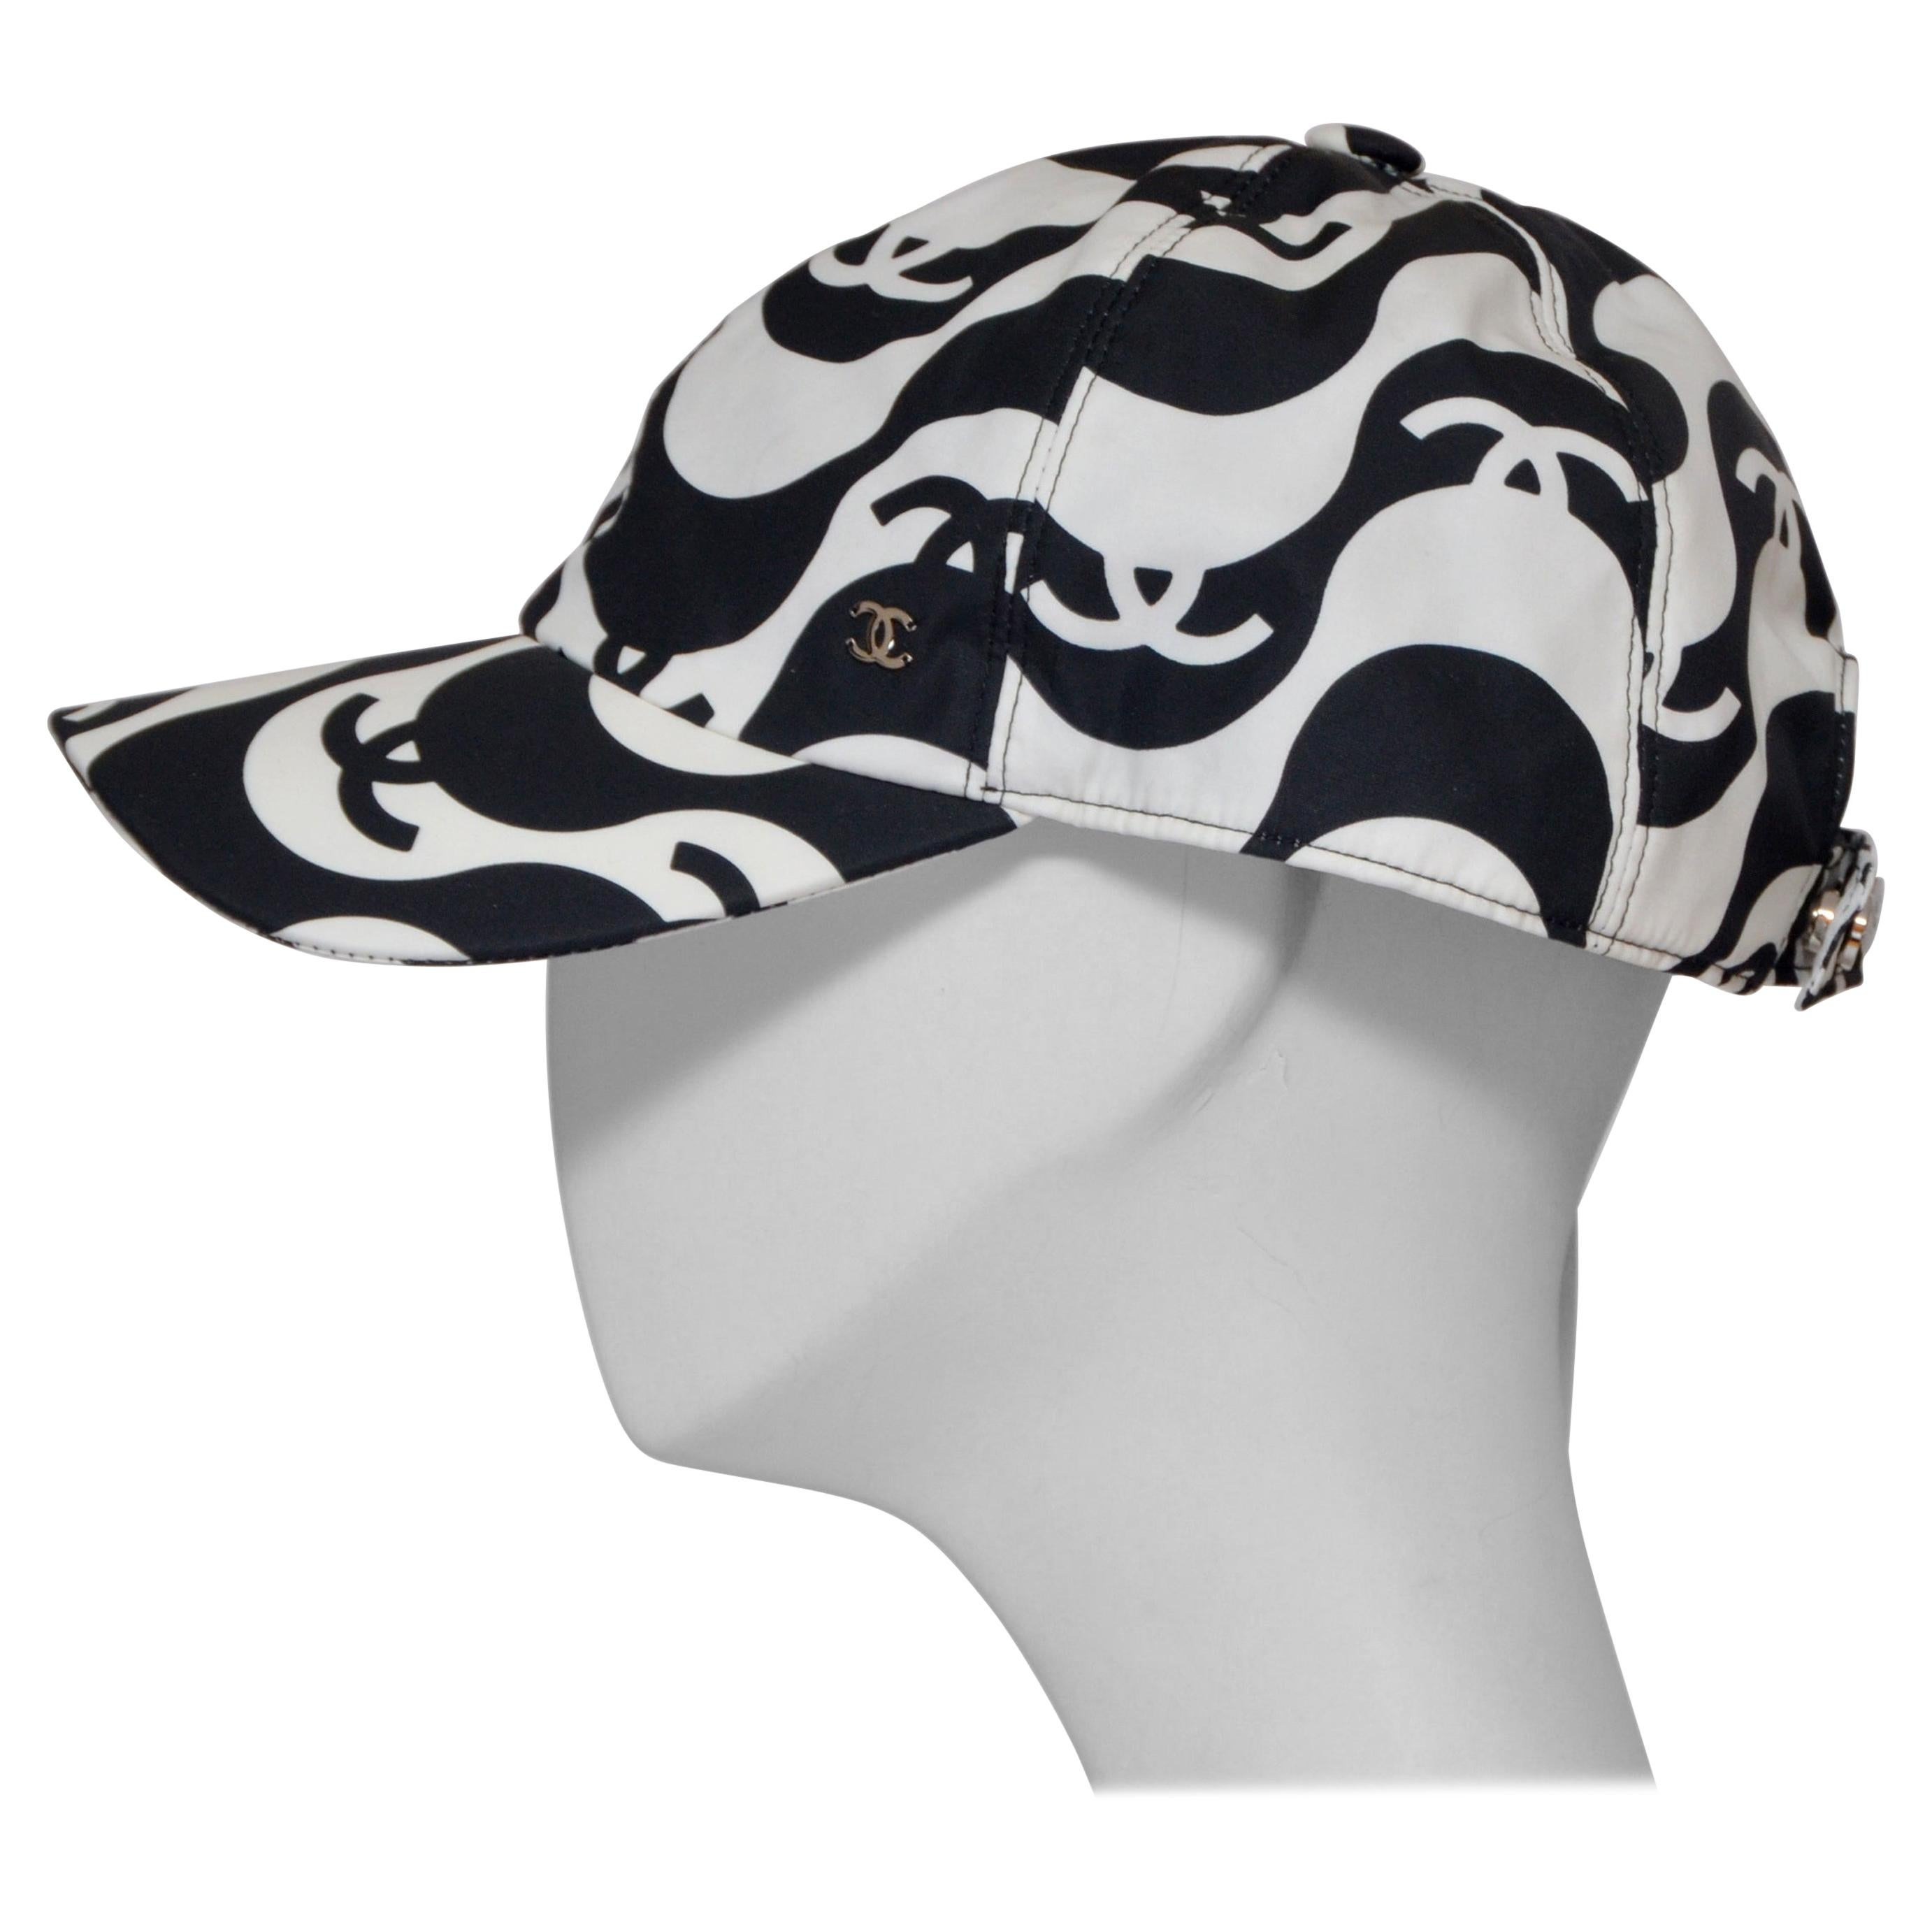 CHANEL Tennis Black/White Hat NEW With Tags